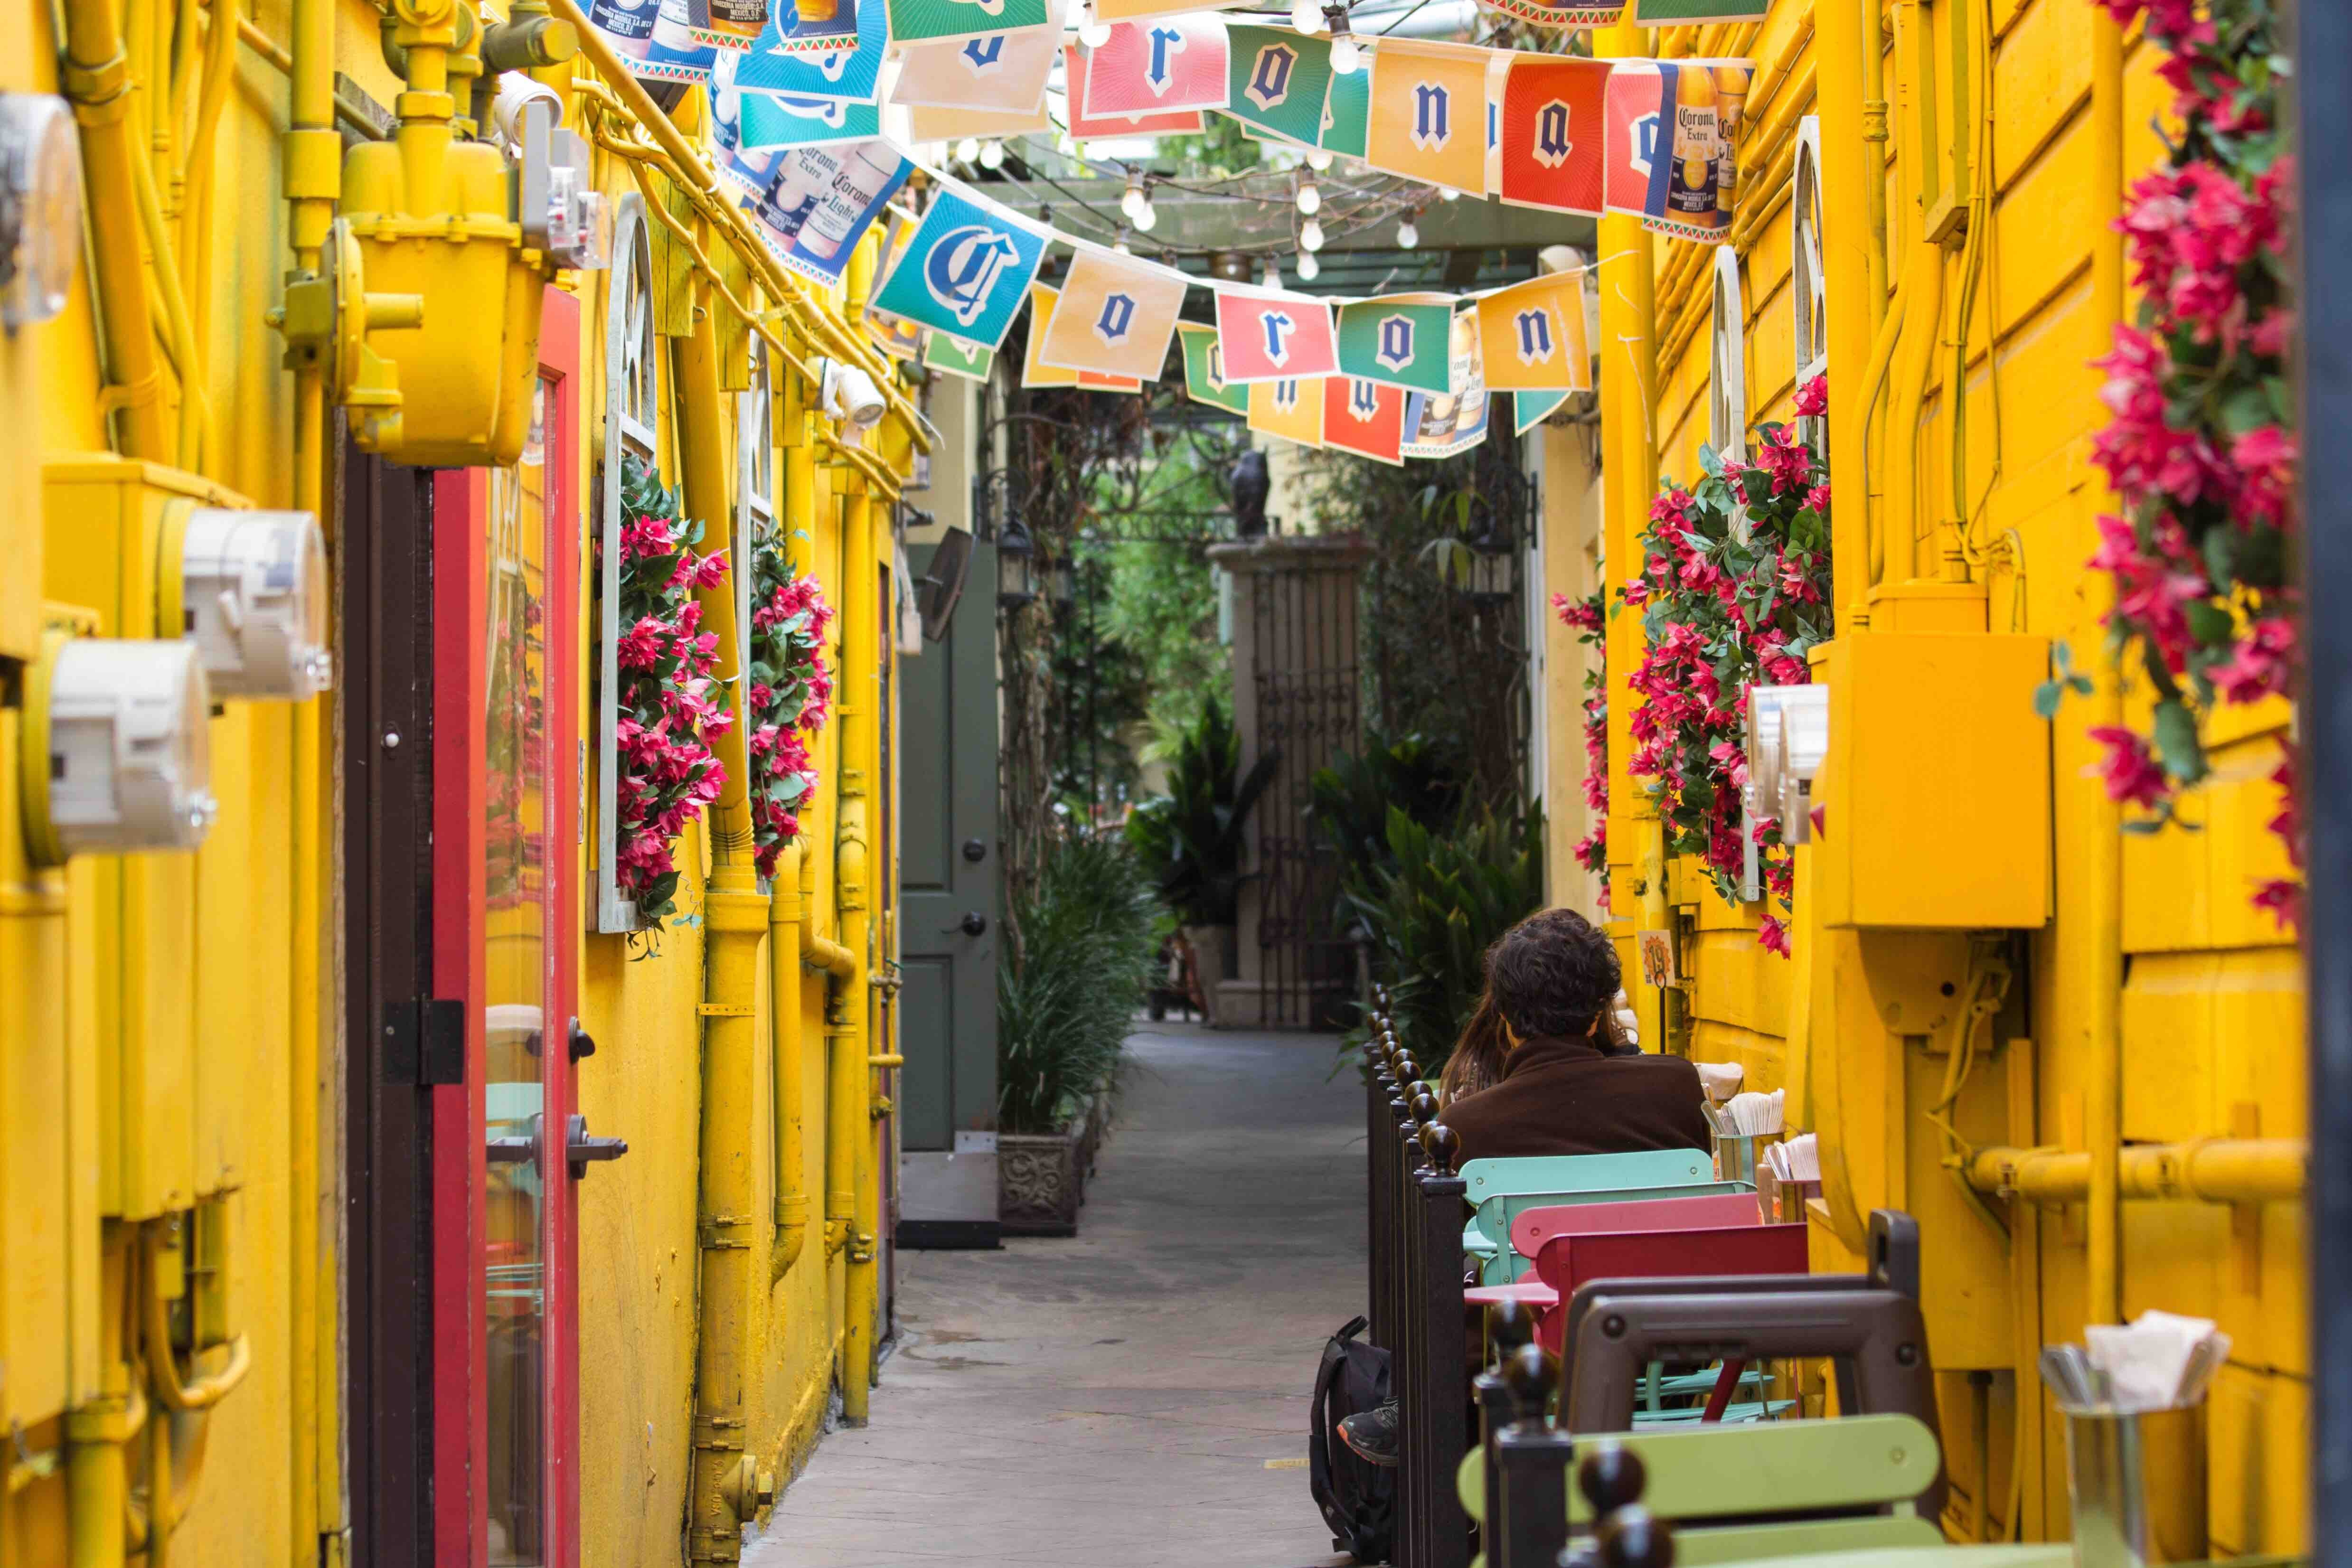 An alley between yellow walls and buildings and people sitting in a cafe under a festival decorations